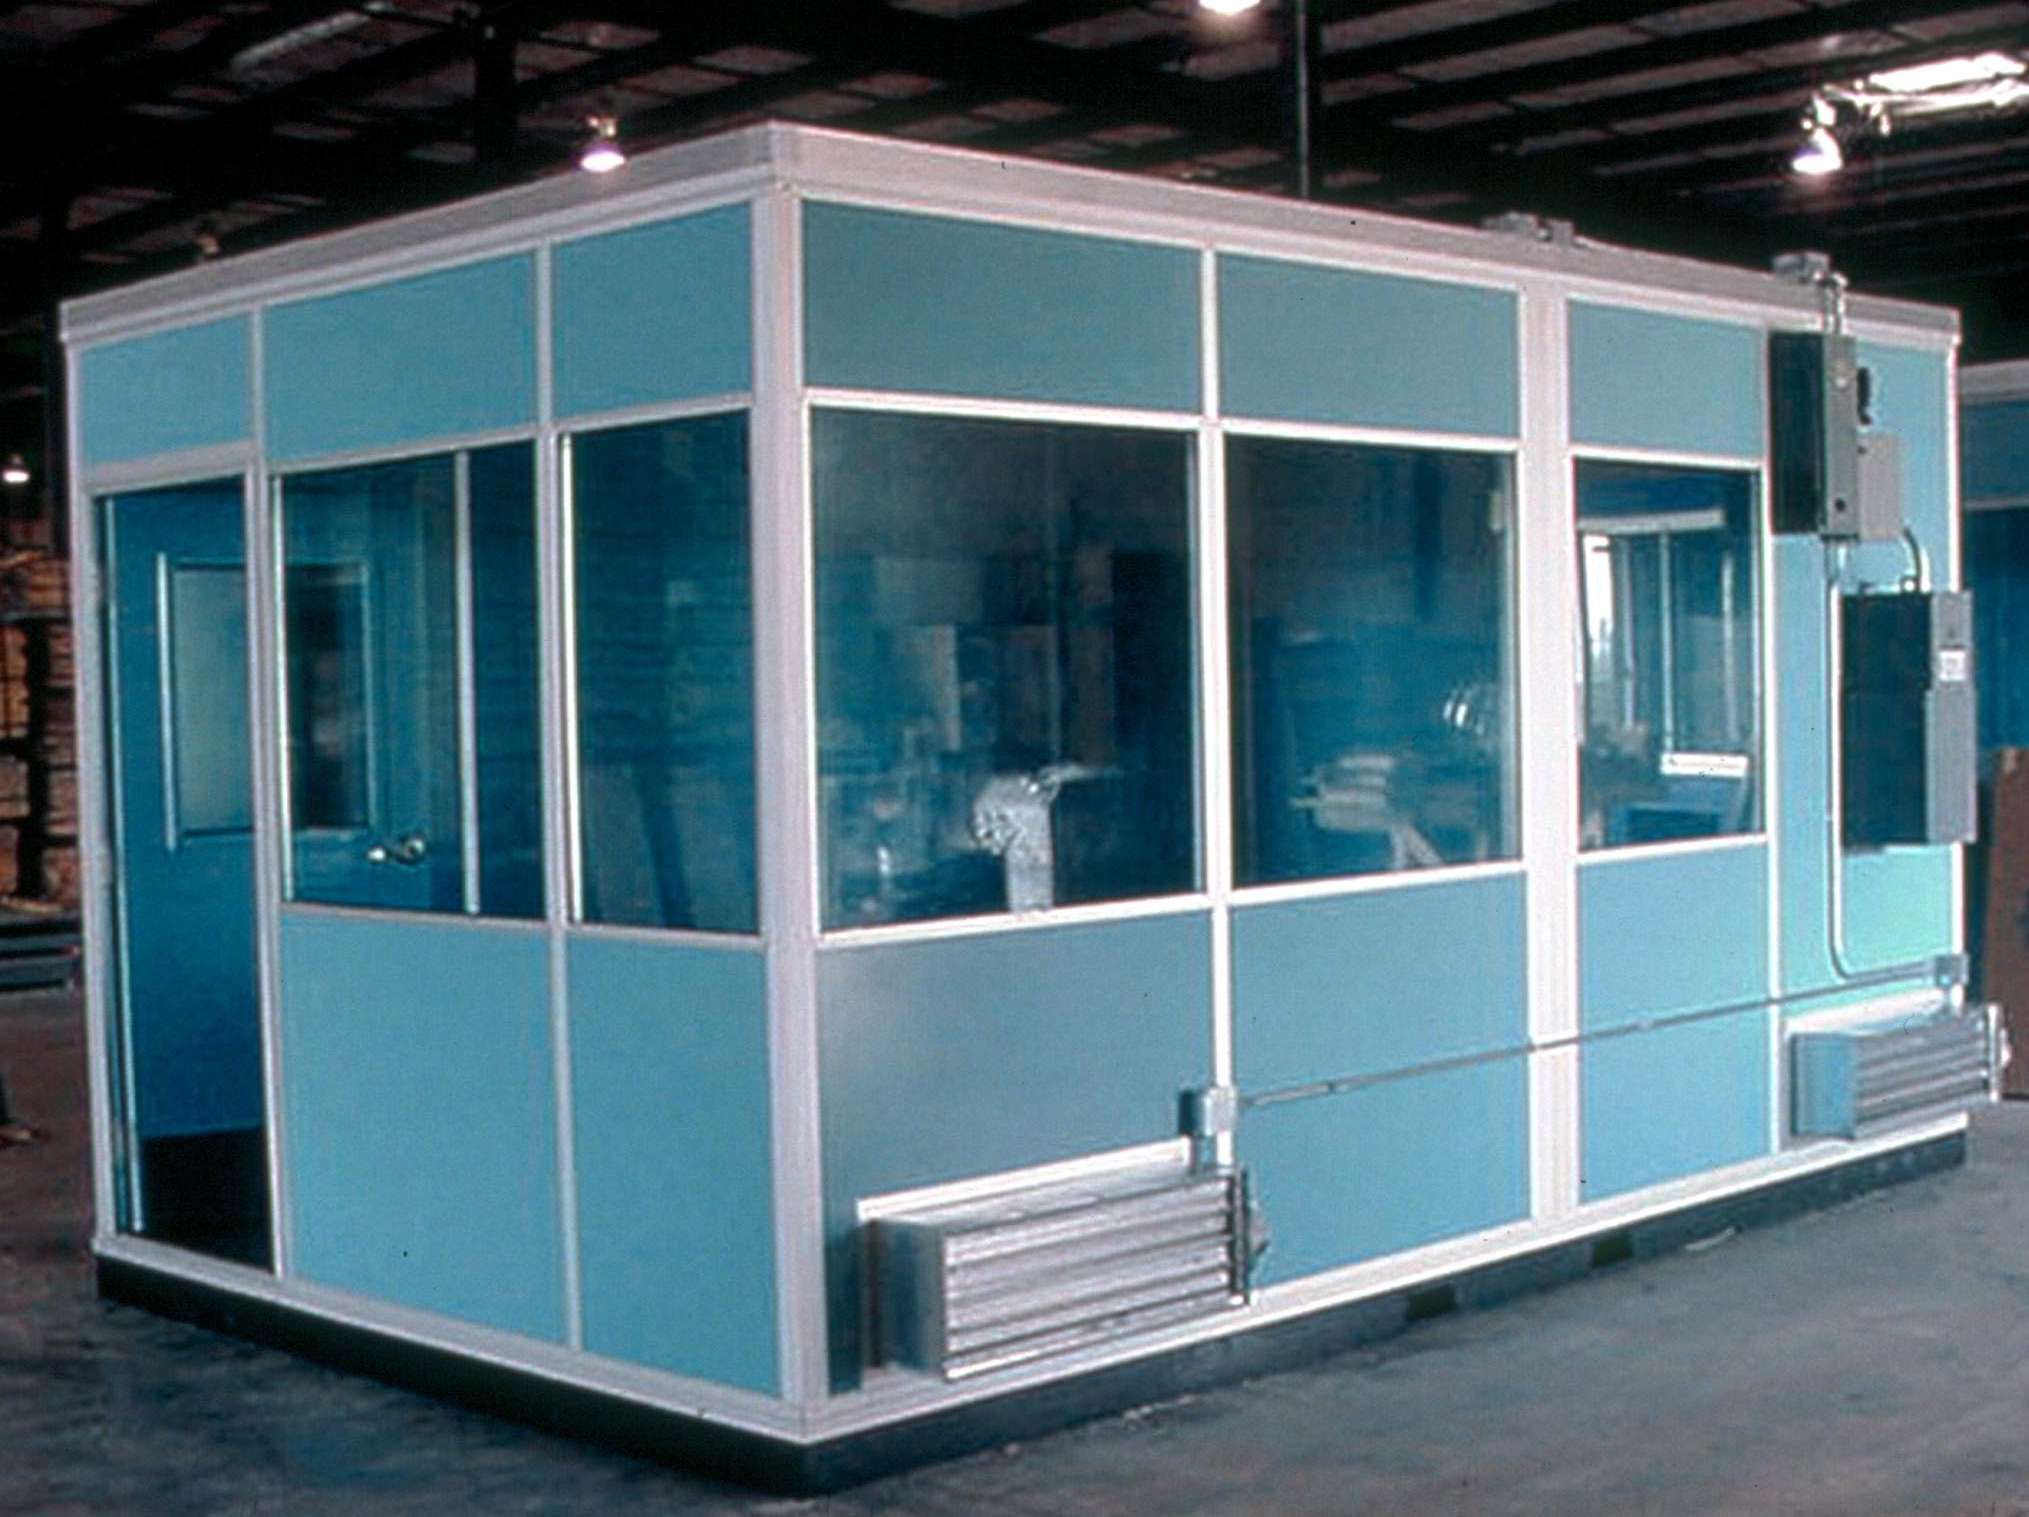 Portable Smoking Shelters : Modular smoking shelters available from porta king